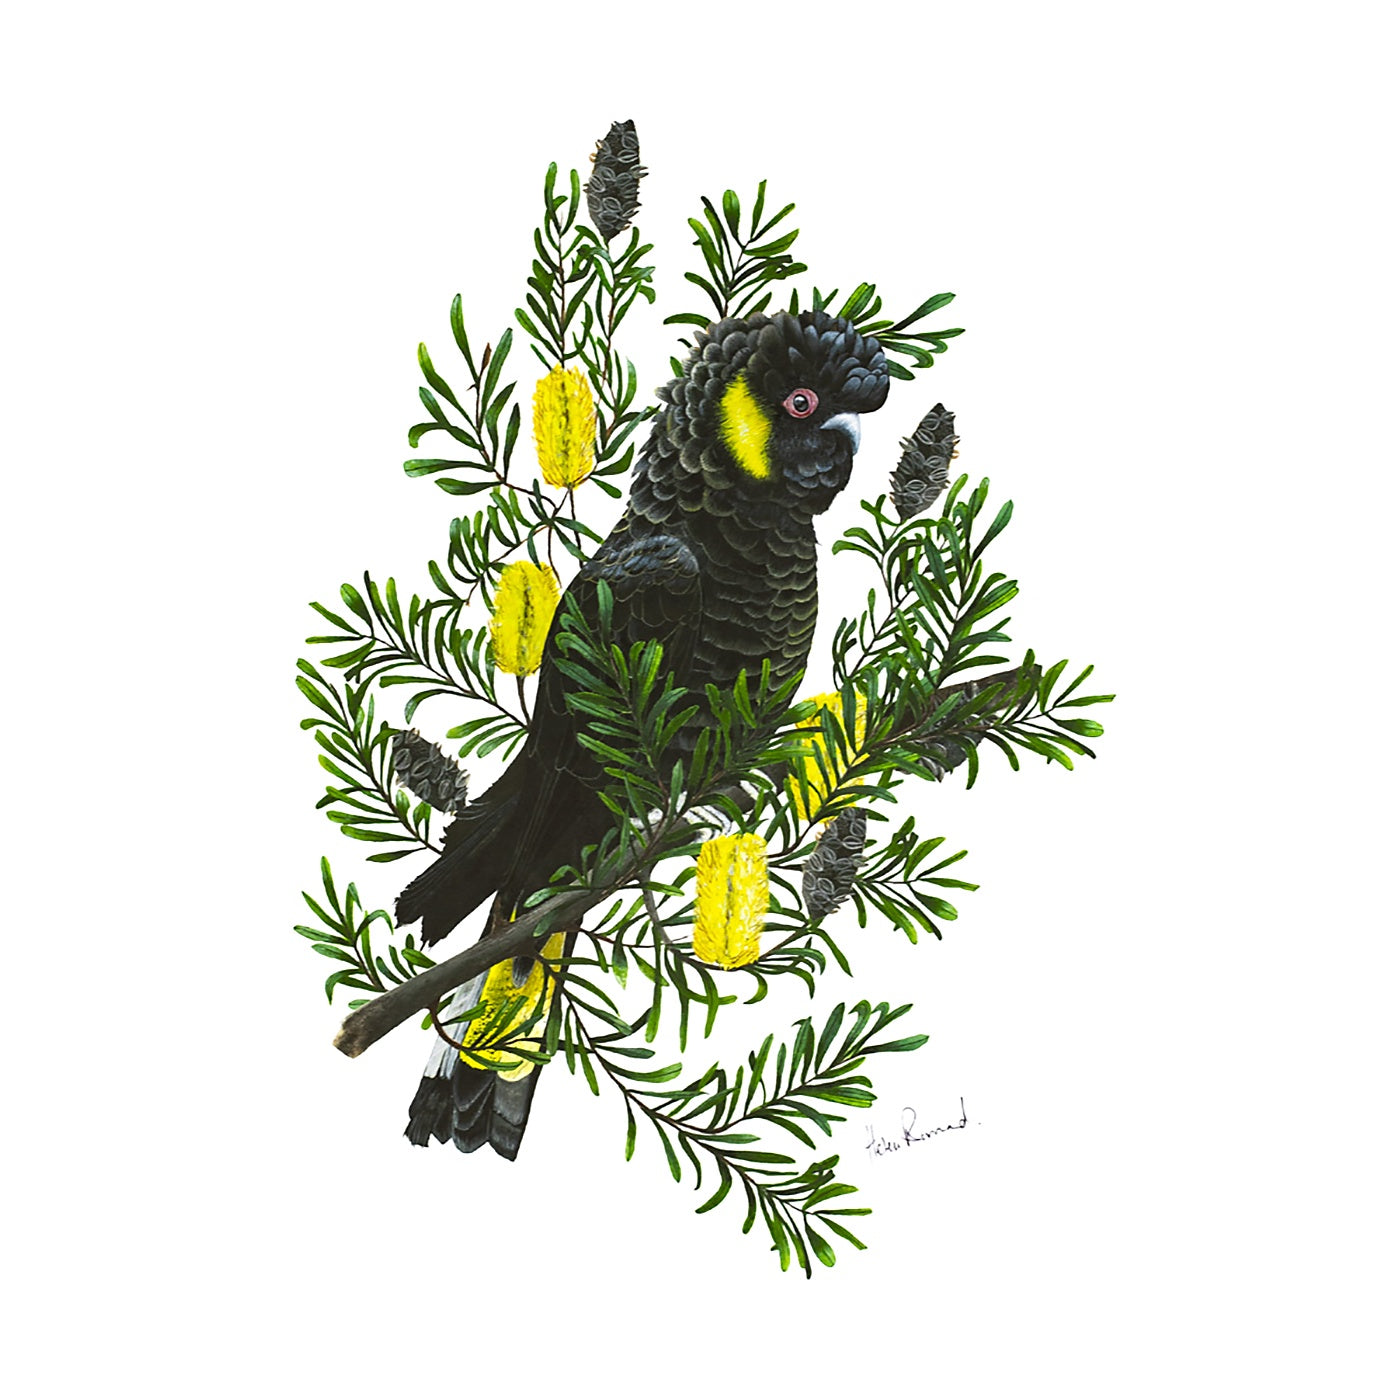 The Little Wren - Art Print - Yellow-Tailed Black Cockatoo